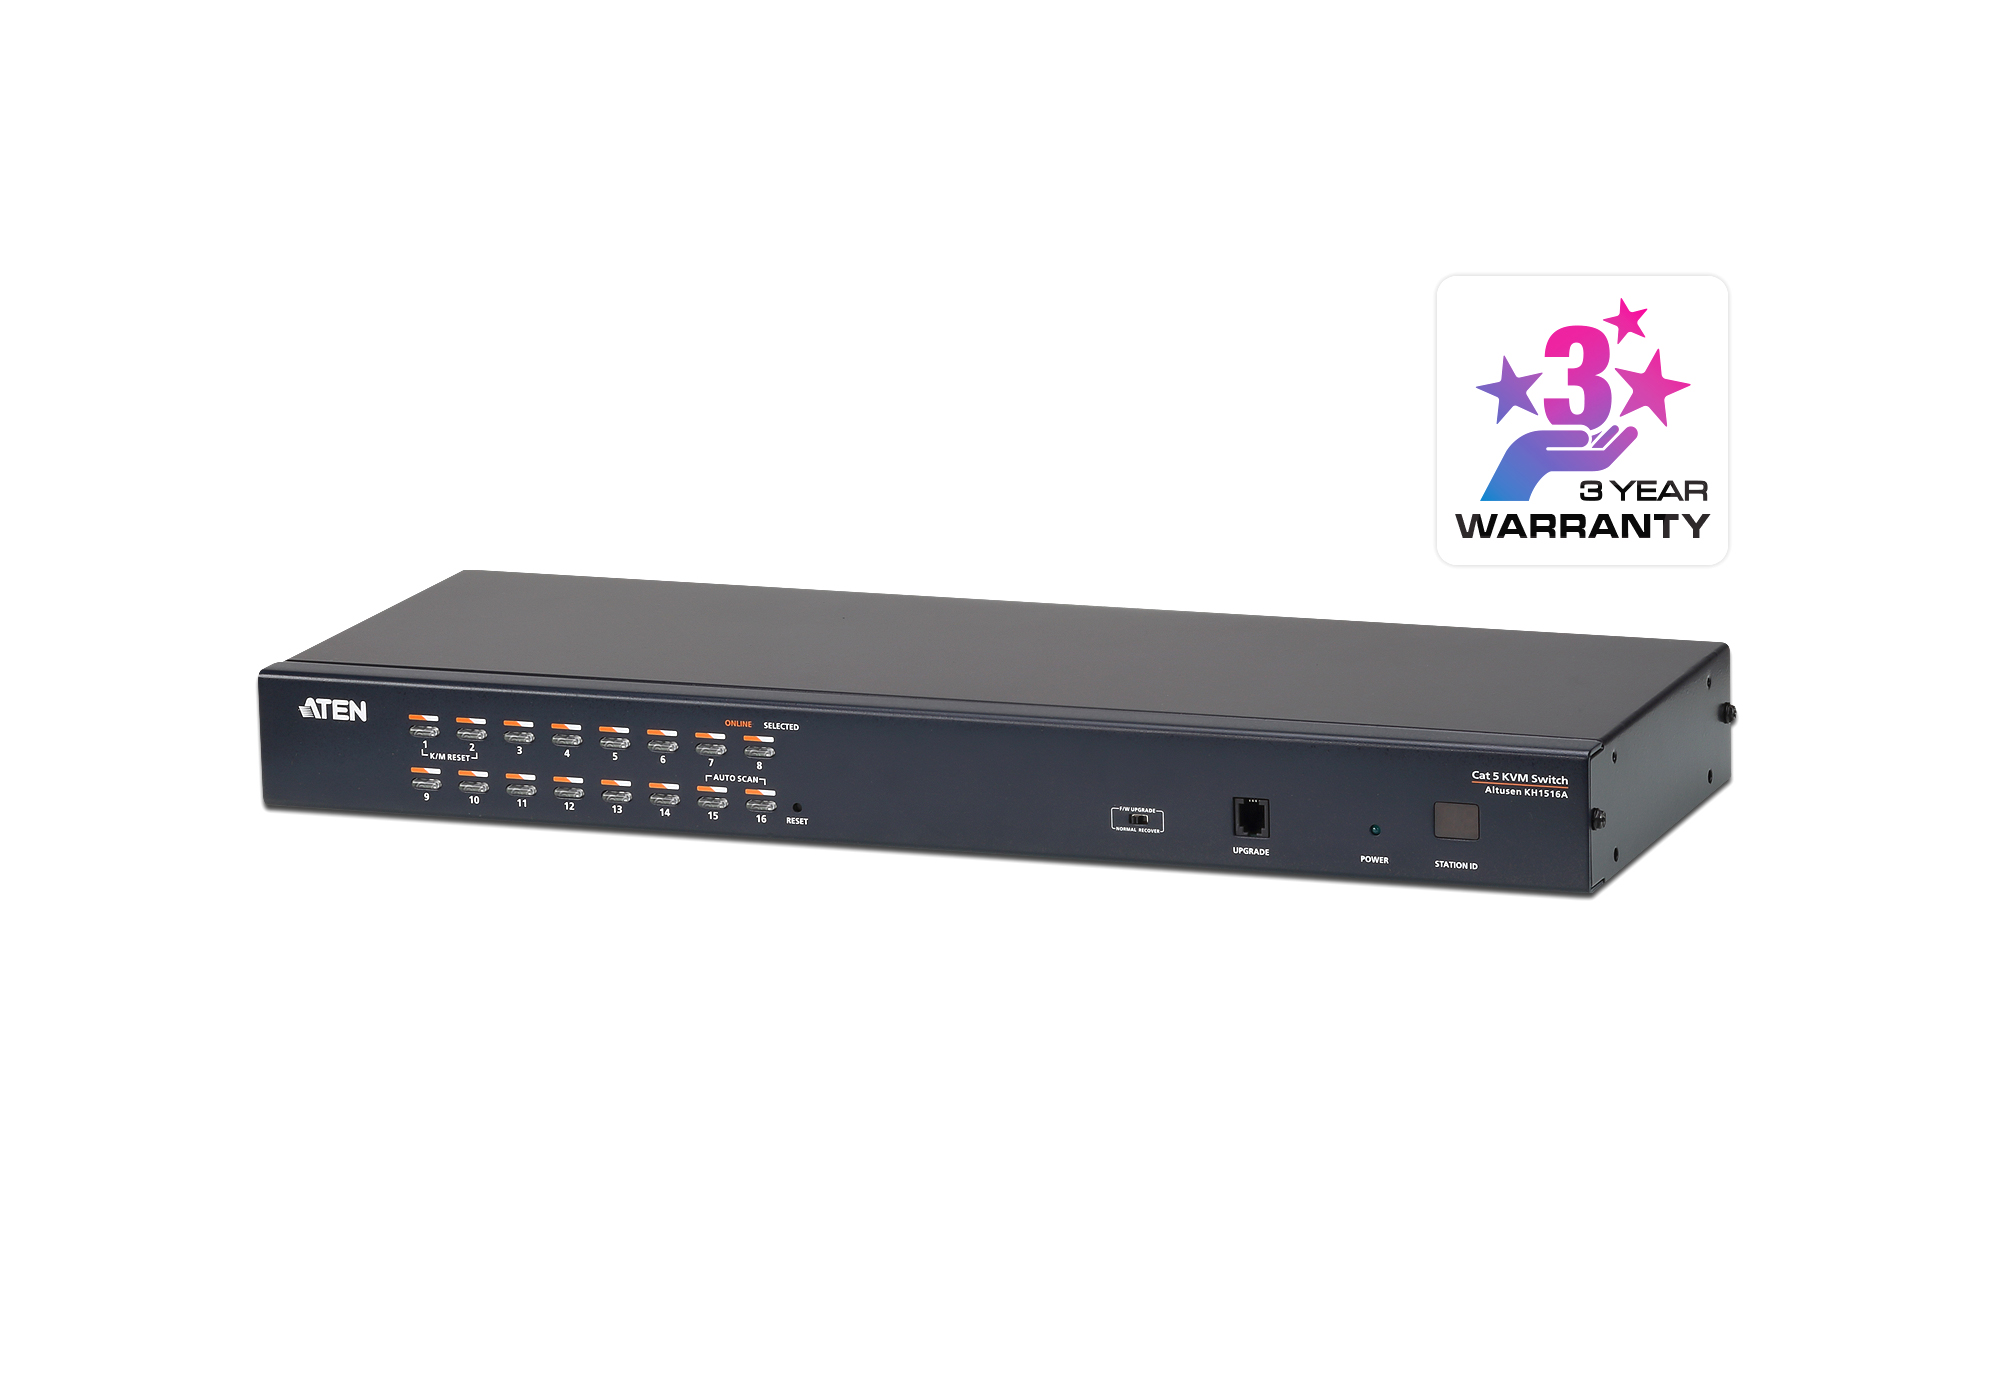 16-Port Multi-Interface (DisplayPort, HDMI, DVI, VGA) Cat 5 KVM Switch-1